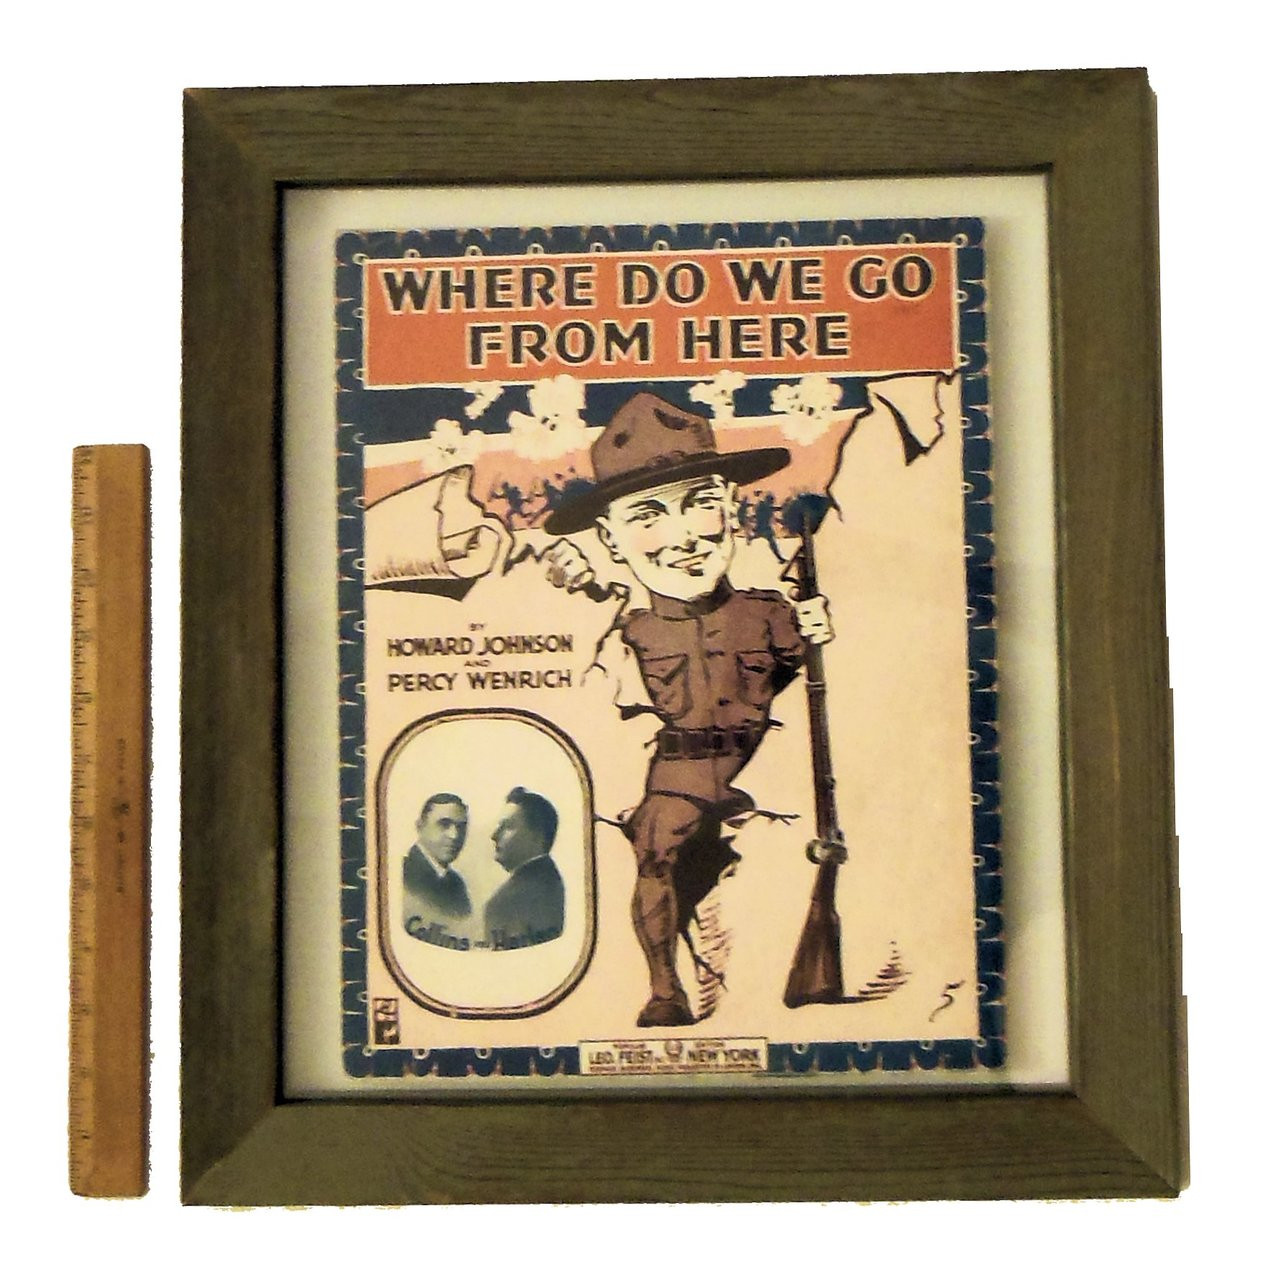 Where Do We Go From Here? by Howard Johnson and Percy Weinrich. Vintage sheet music, double sided frame.